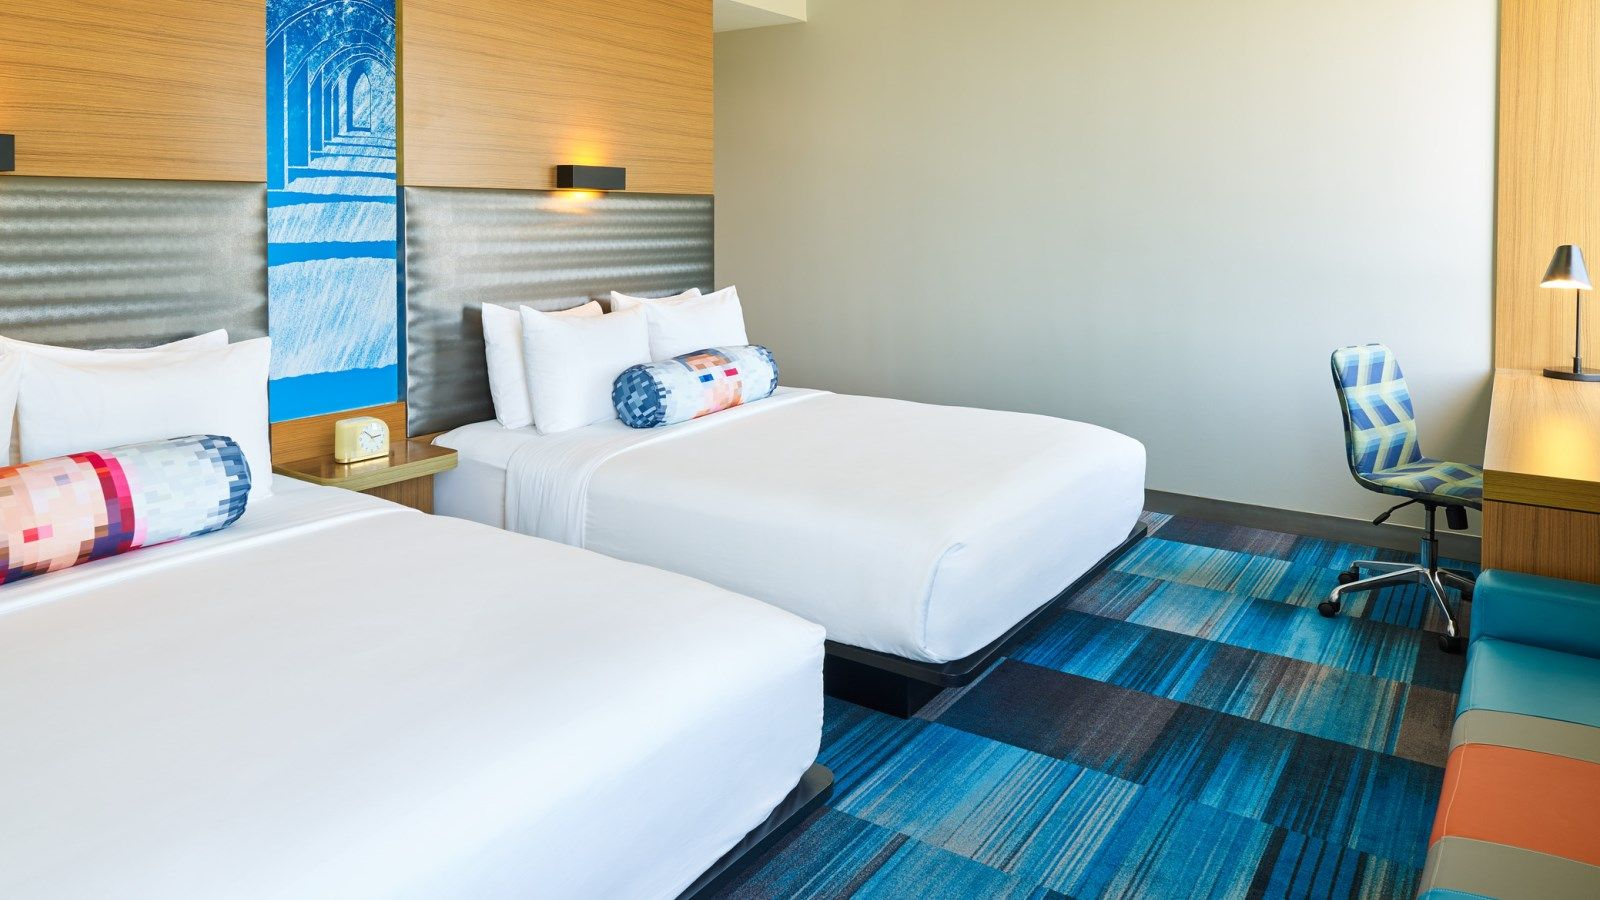 San Antonio Airport Accommodations - Aloft Double Queen Room